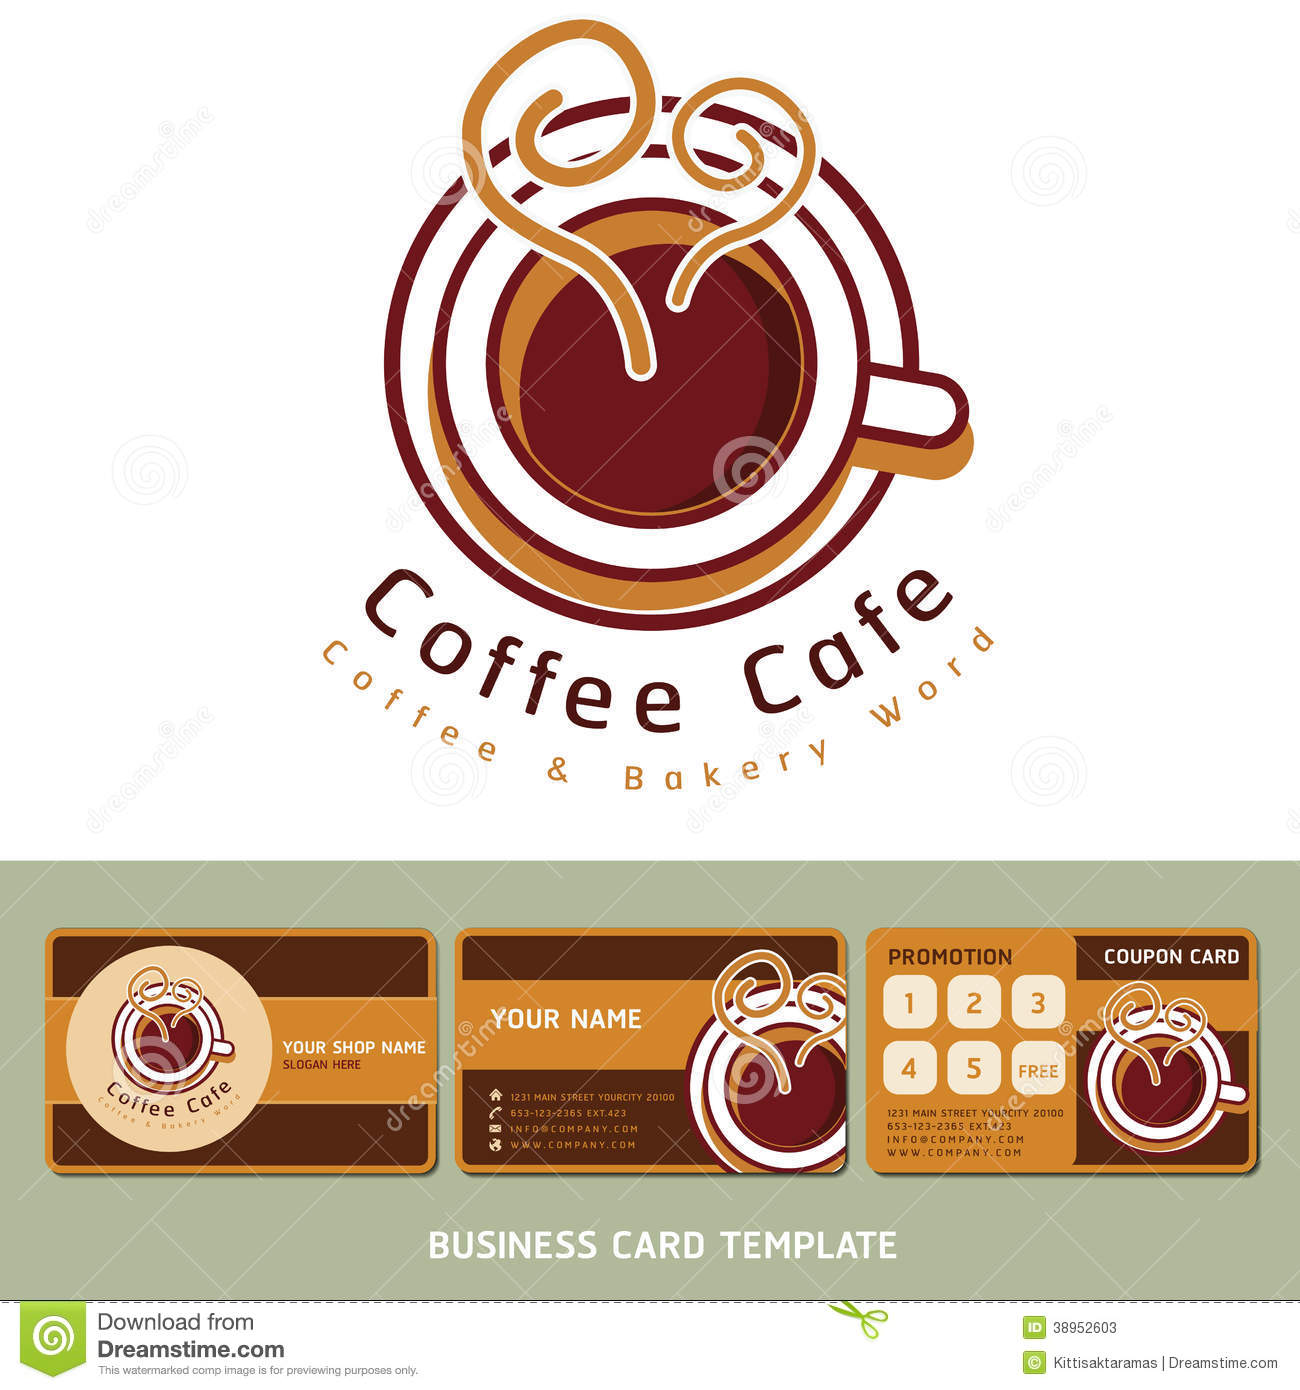 Coffee cafe icon logo and business cards stock vector coffee cafe icon logo and business cards flashek Gallery